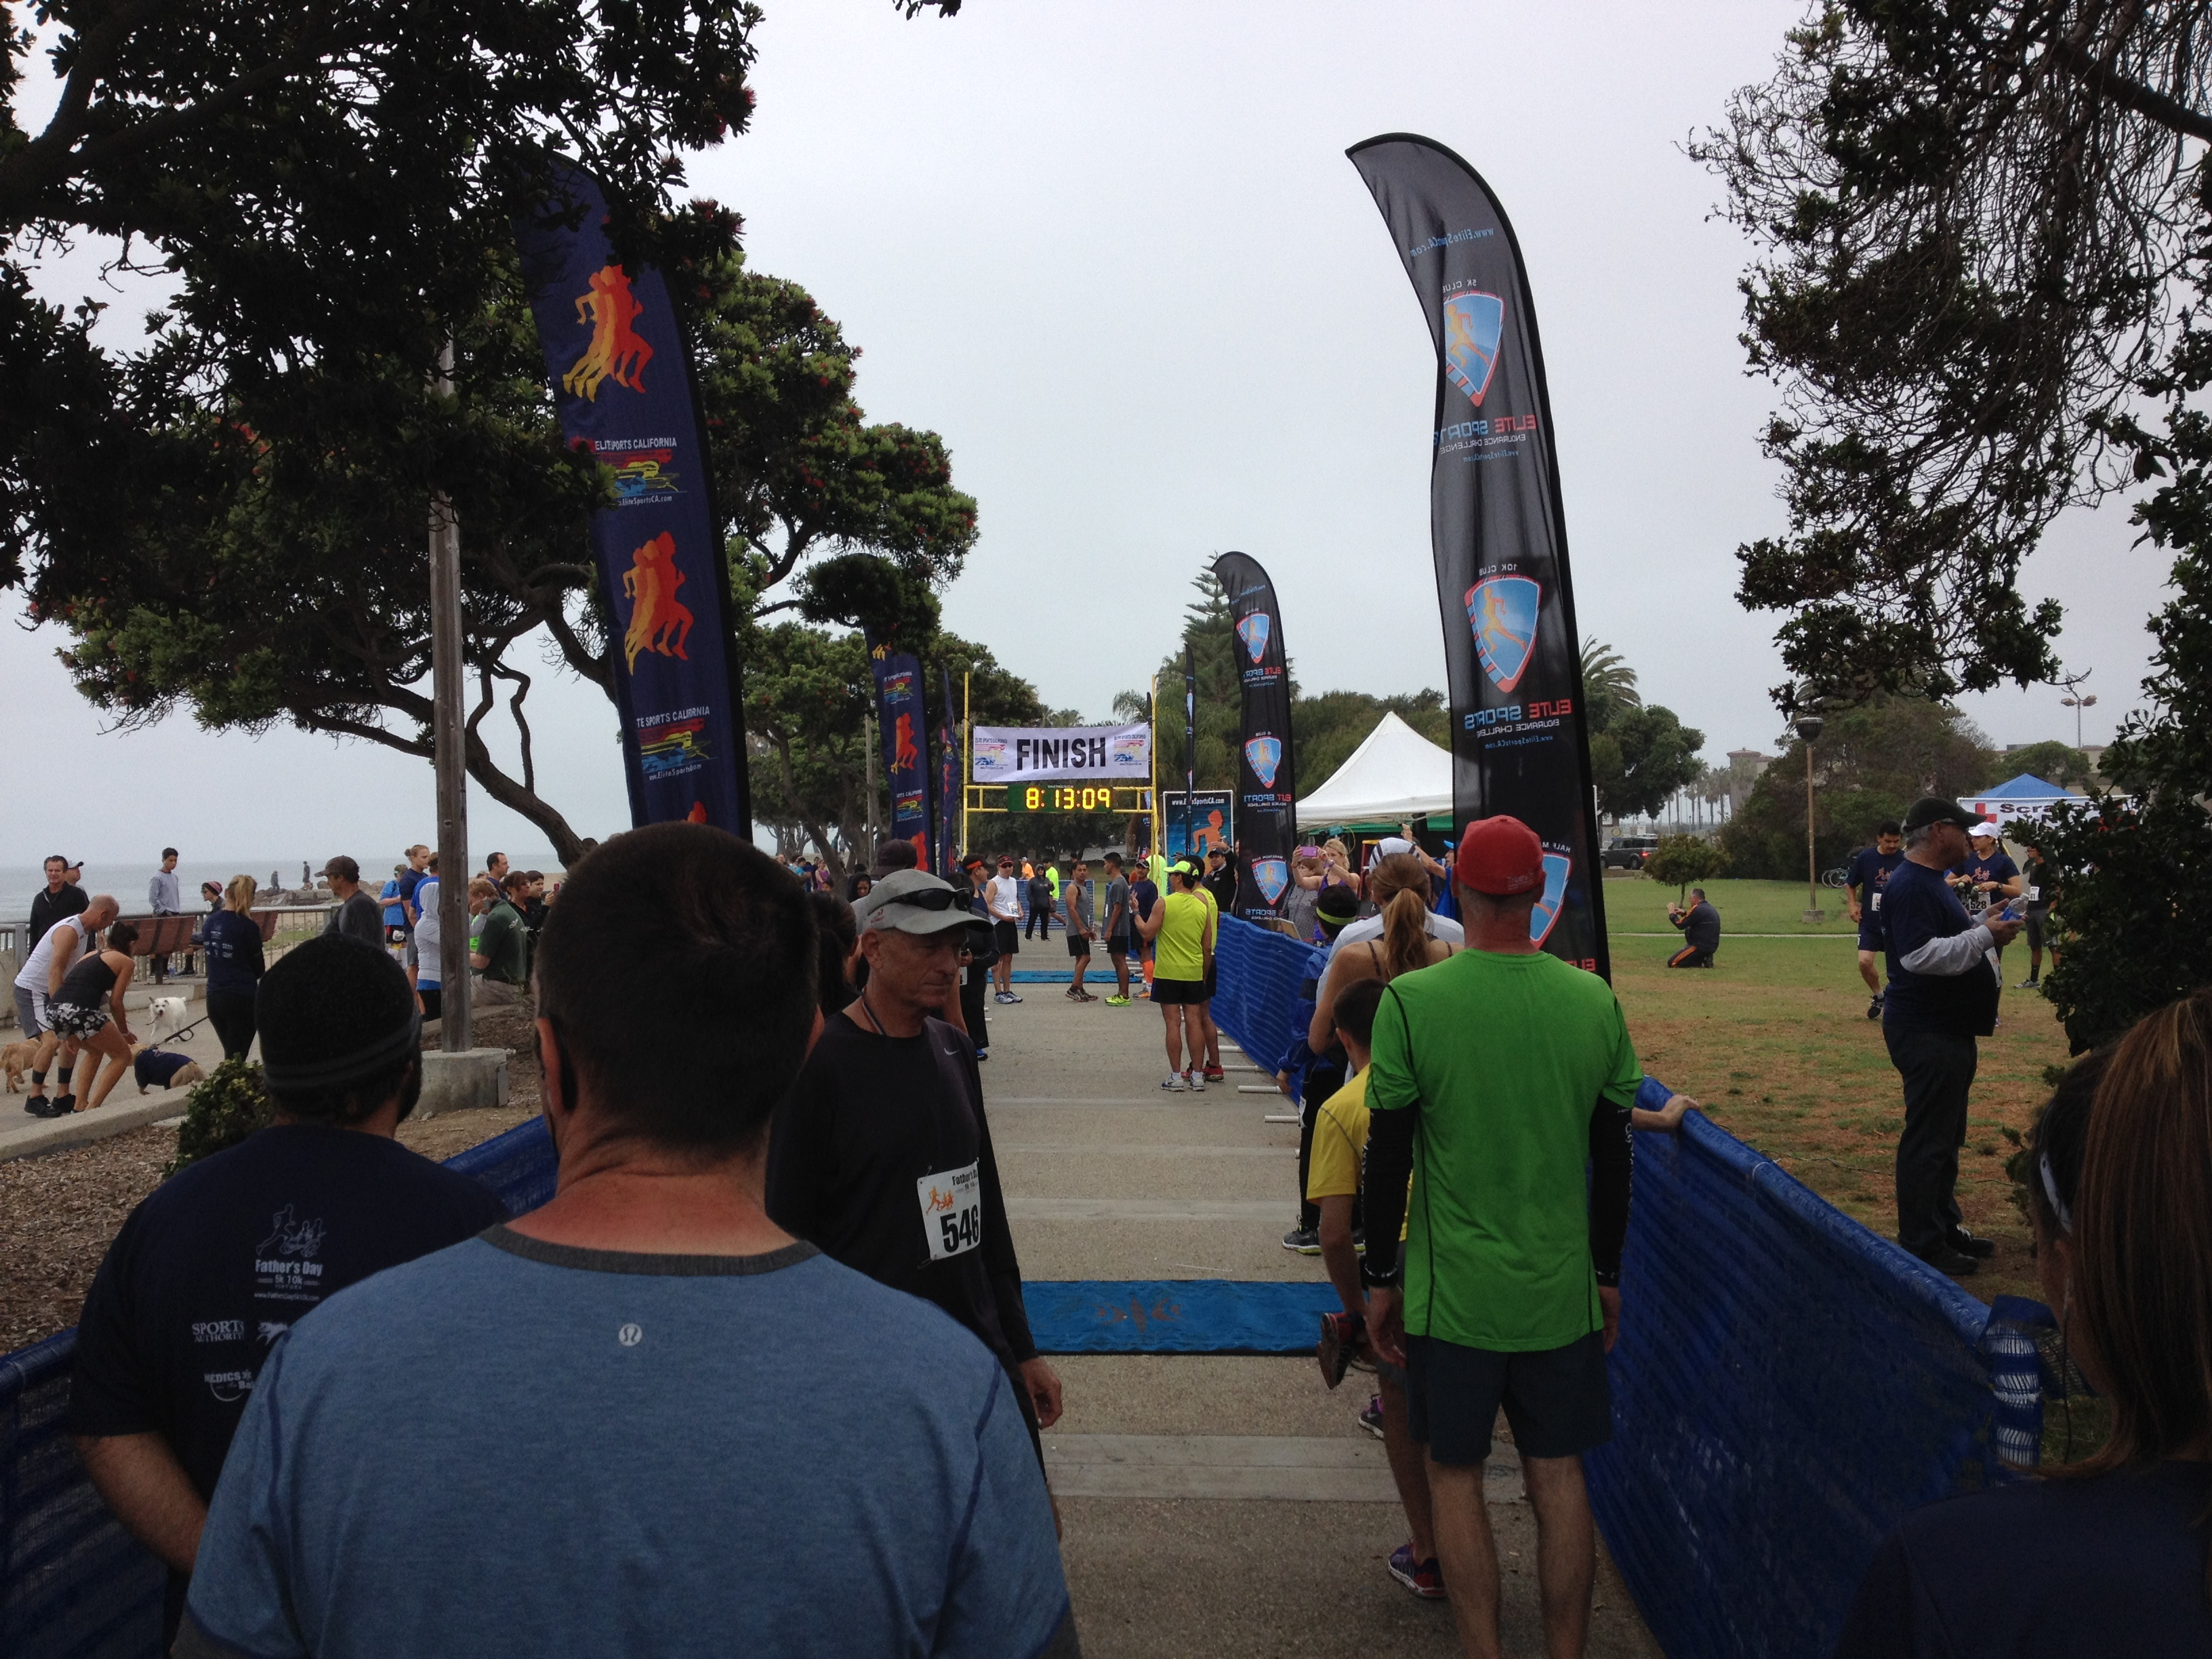 Lining up for the start of the 10k race